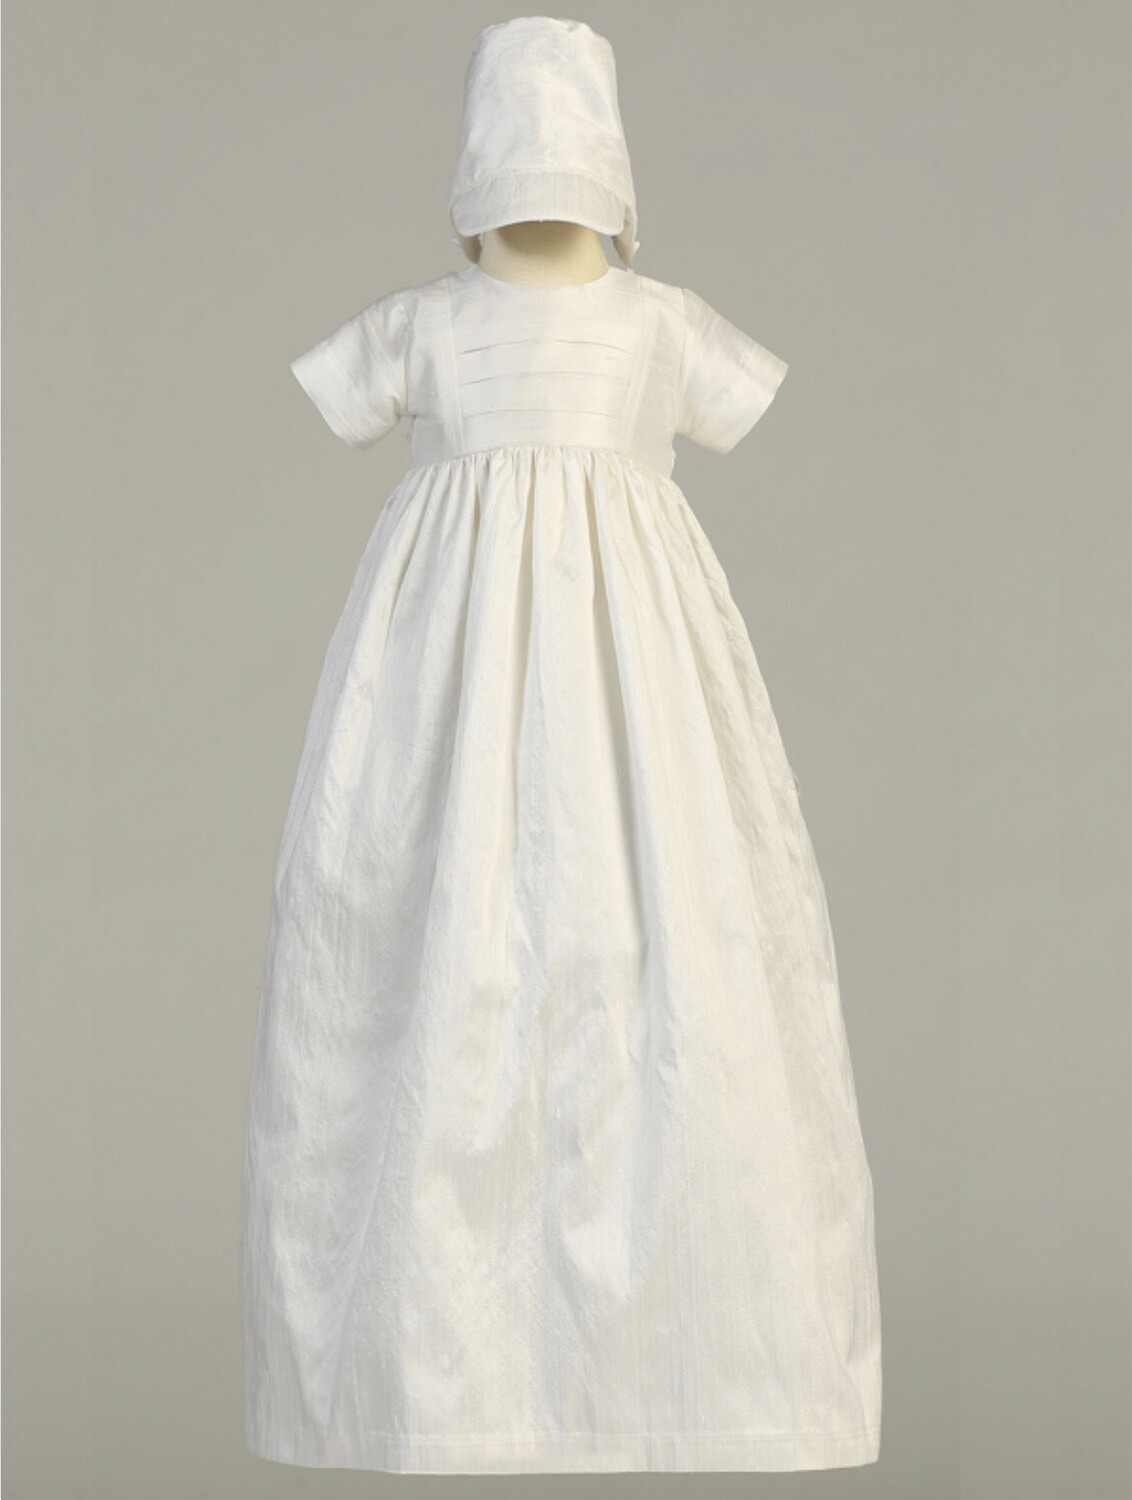 Raw silk heirloom Baptism gown - with two hats (boy and girl)